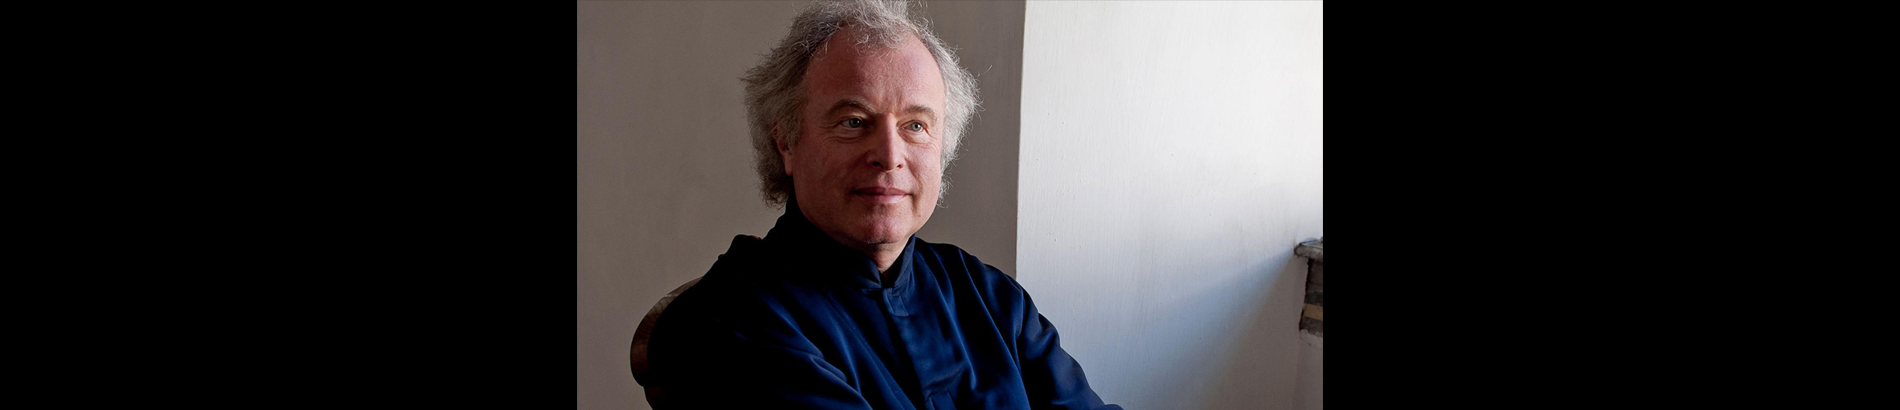 Master Class with András Schiff